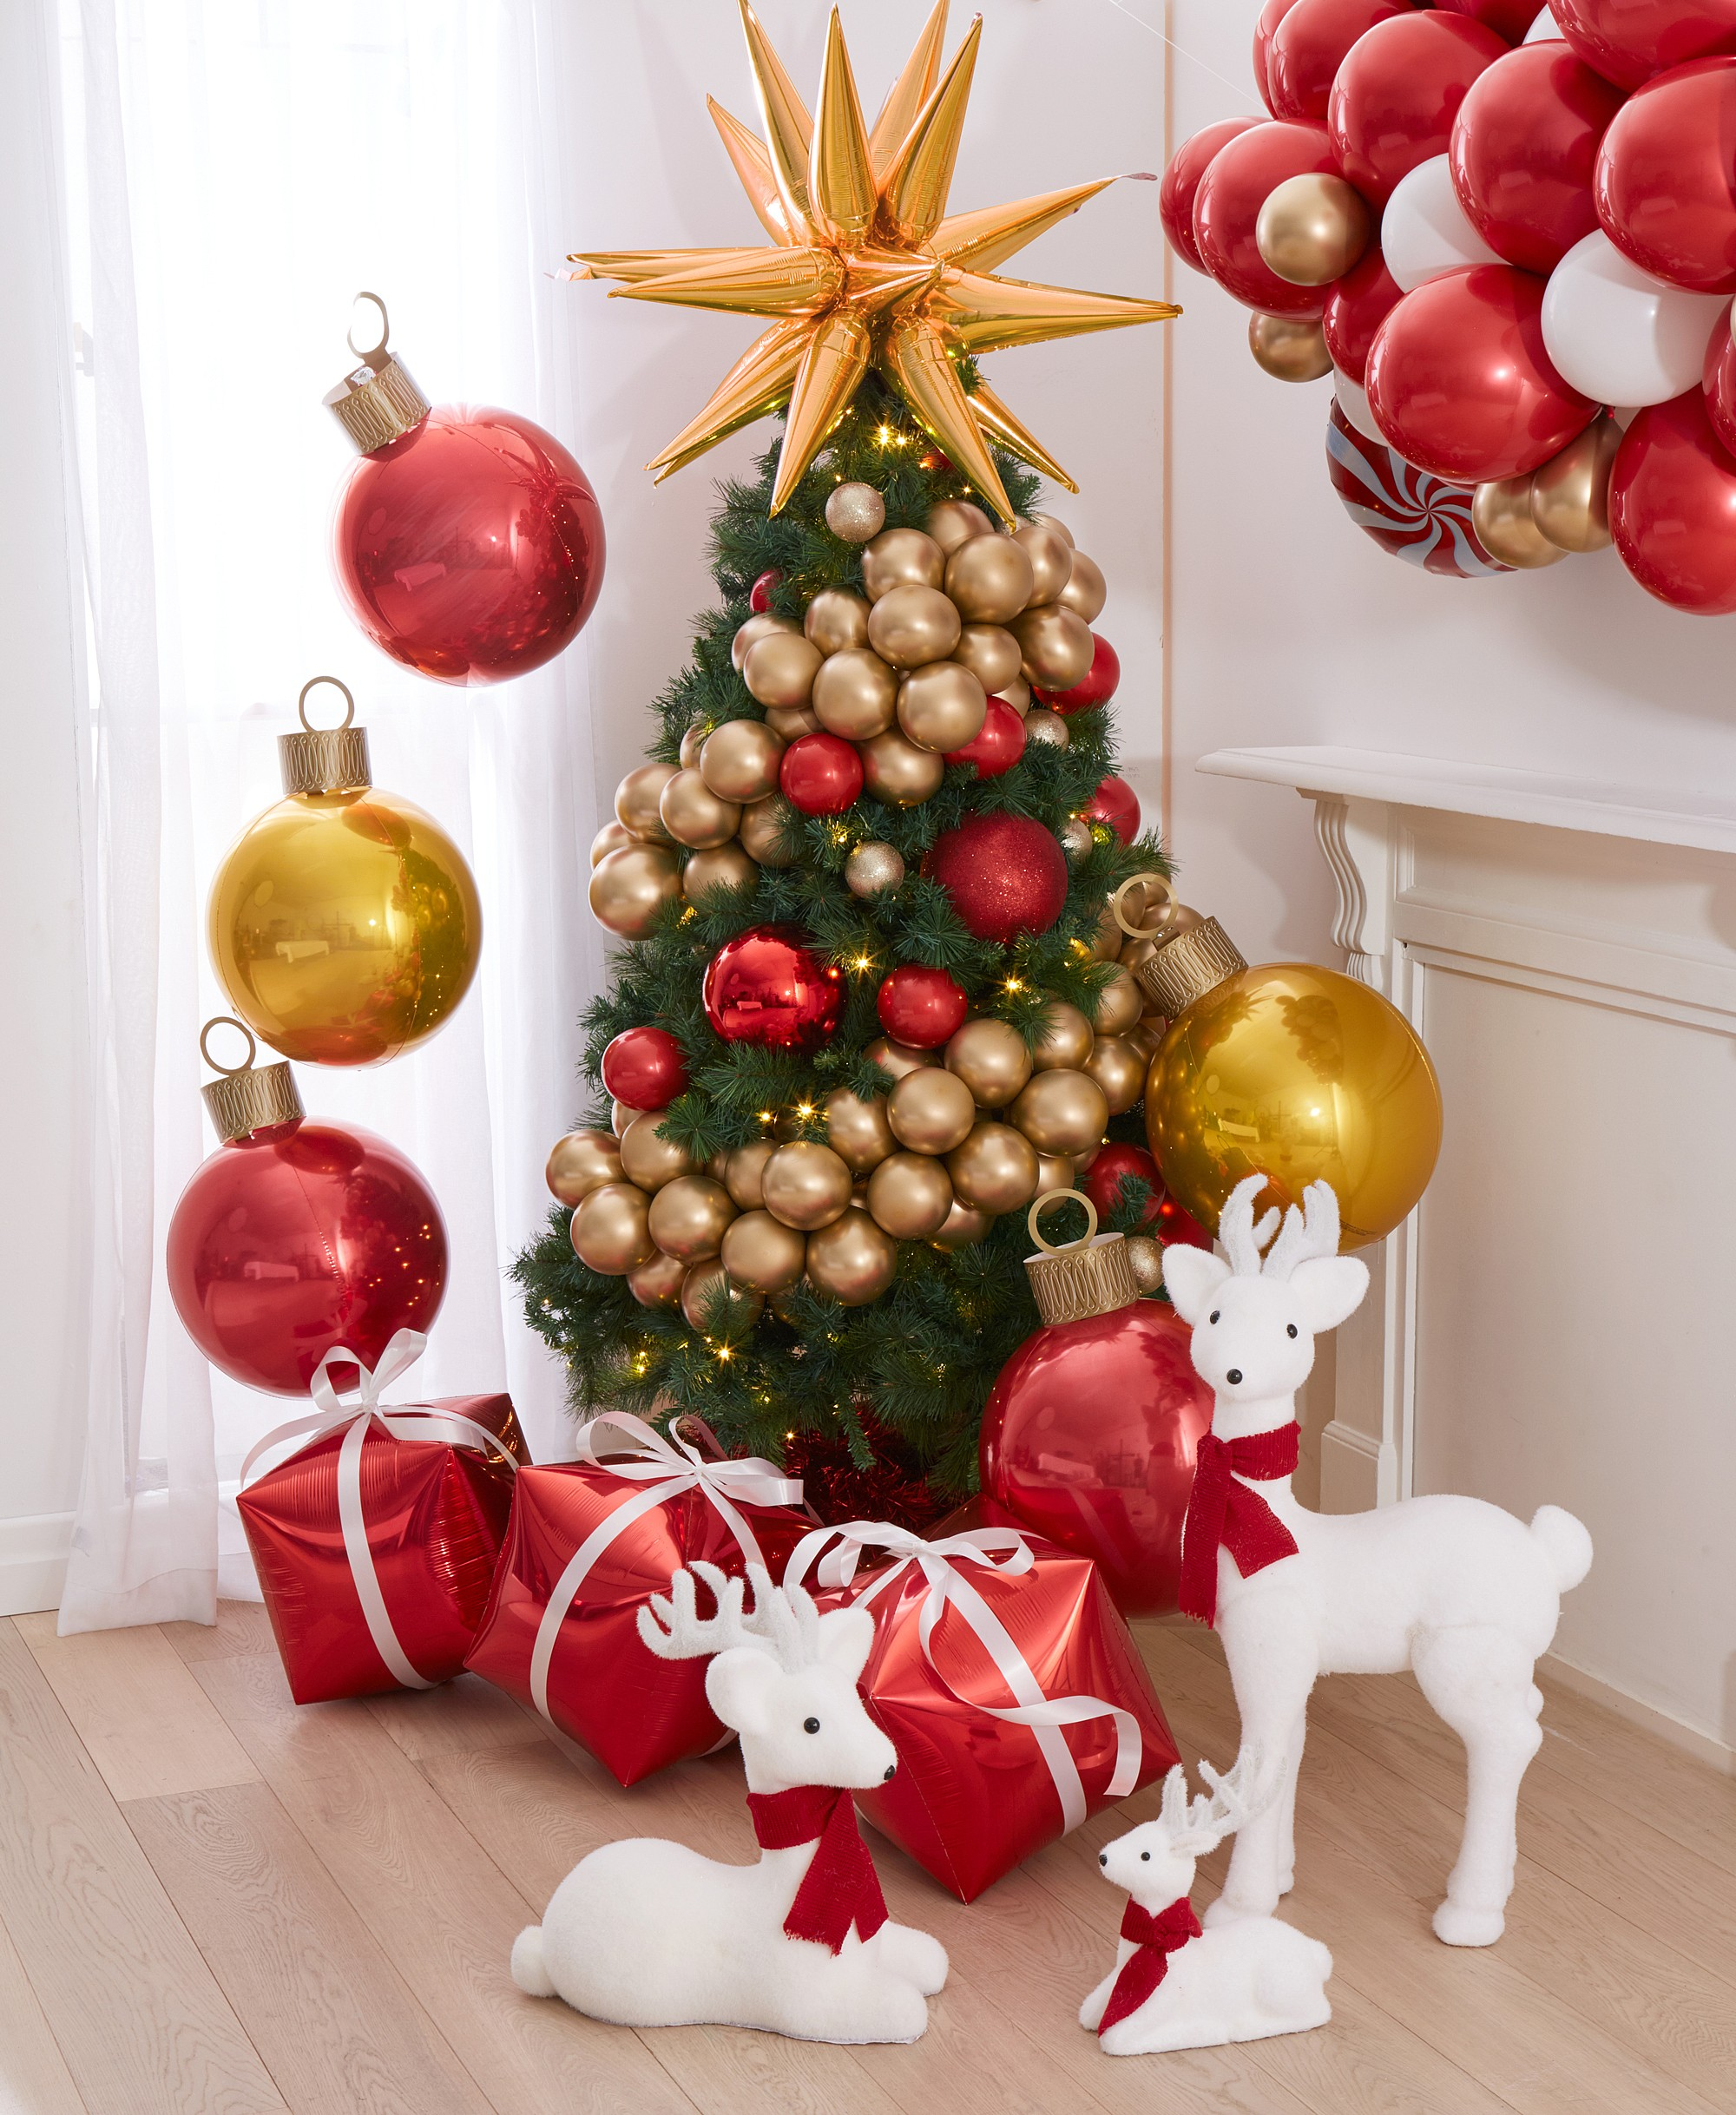 4 Christmas Tree Decoration Ideas For 2019 Party Supplies Decorations Costumes Lombard The Paper People